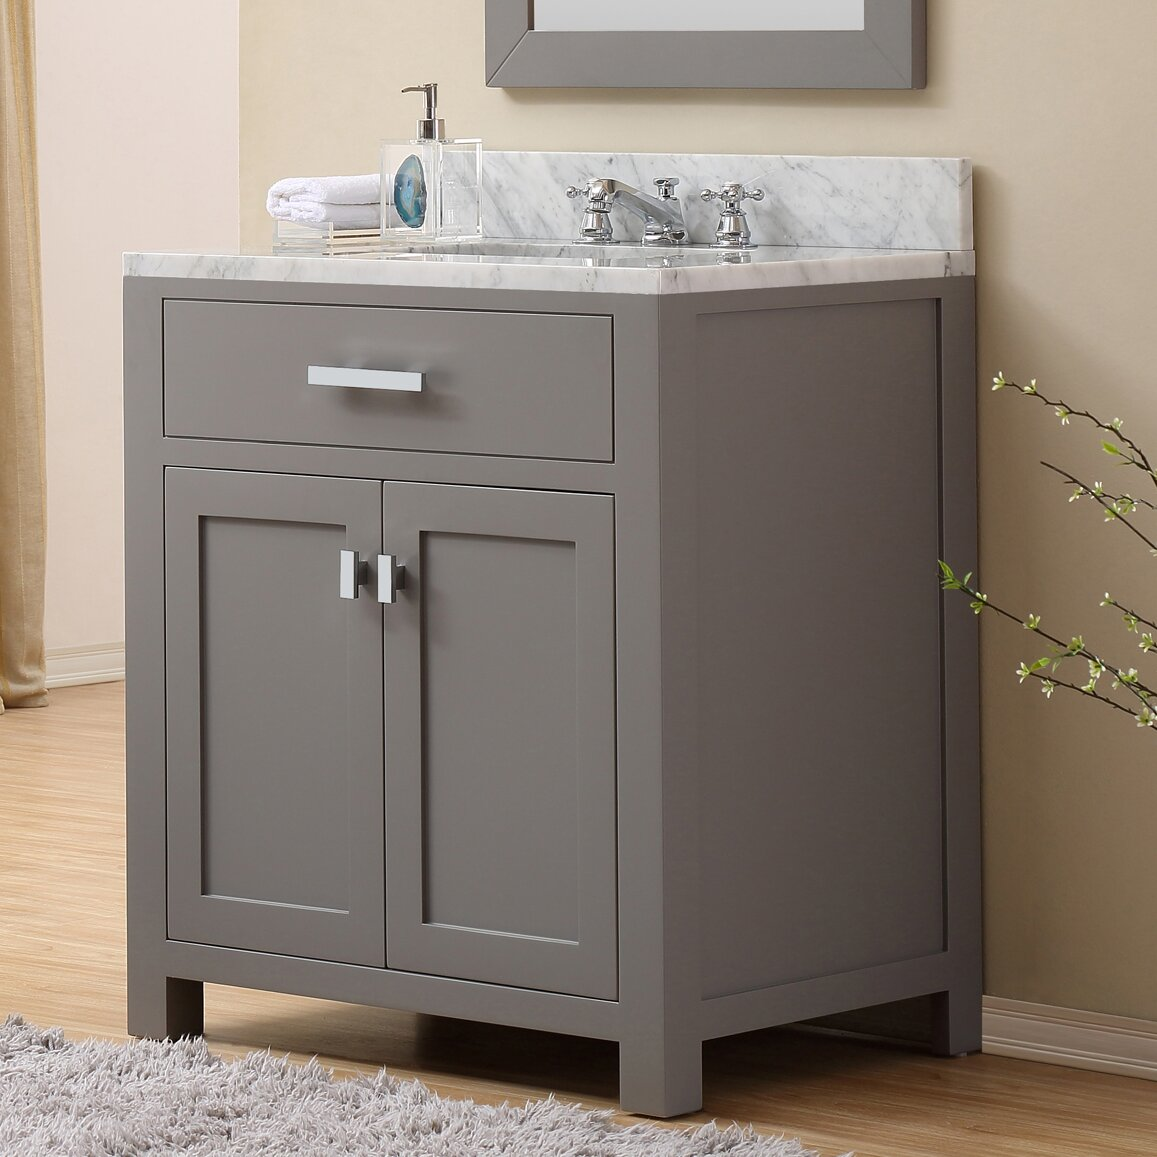 Dcor design creighton 30 single sink bathroom vanity set reviews wayfair Bathroom sink and vanity sets